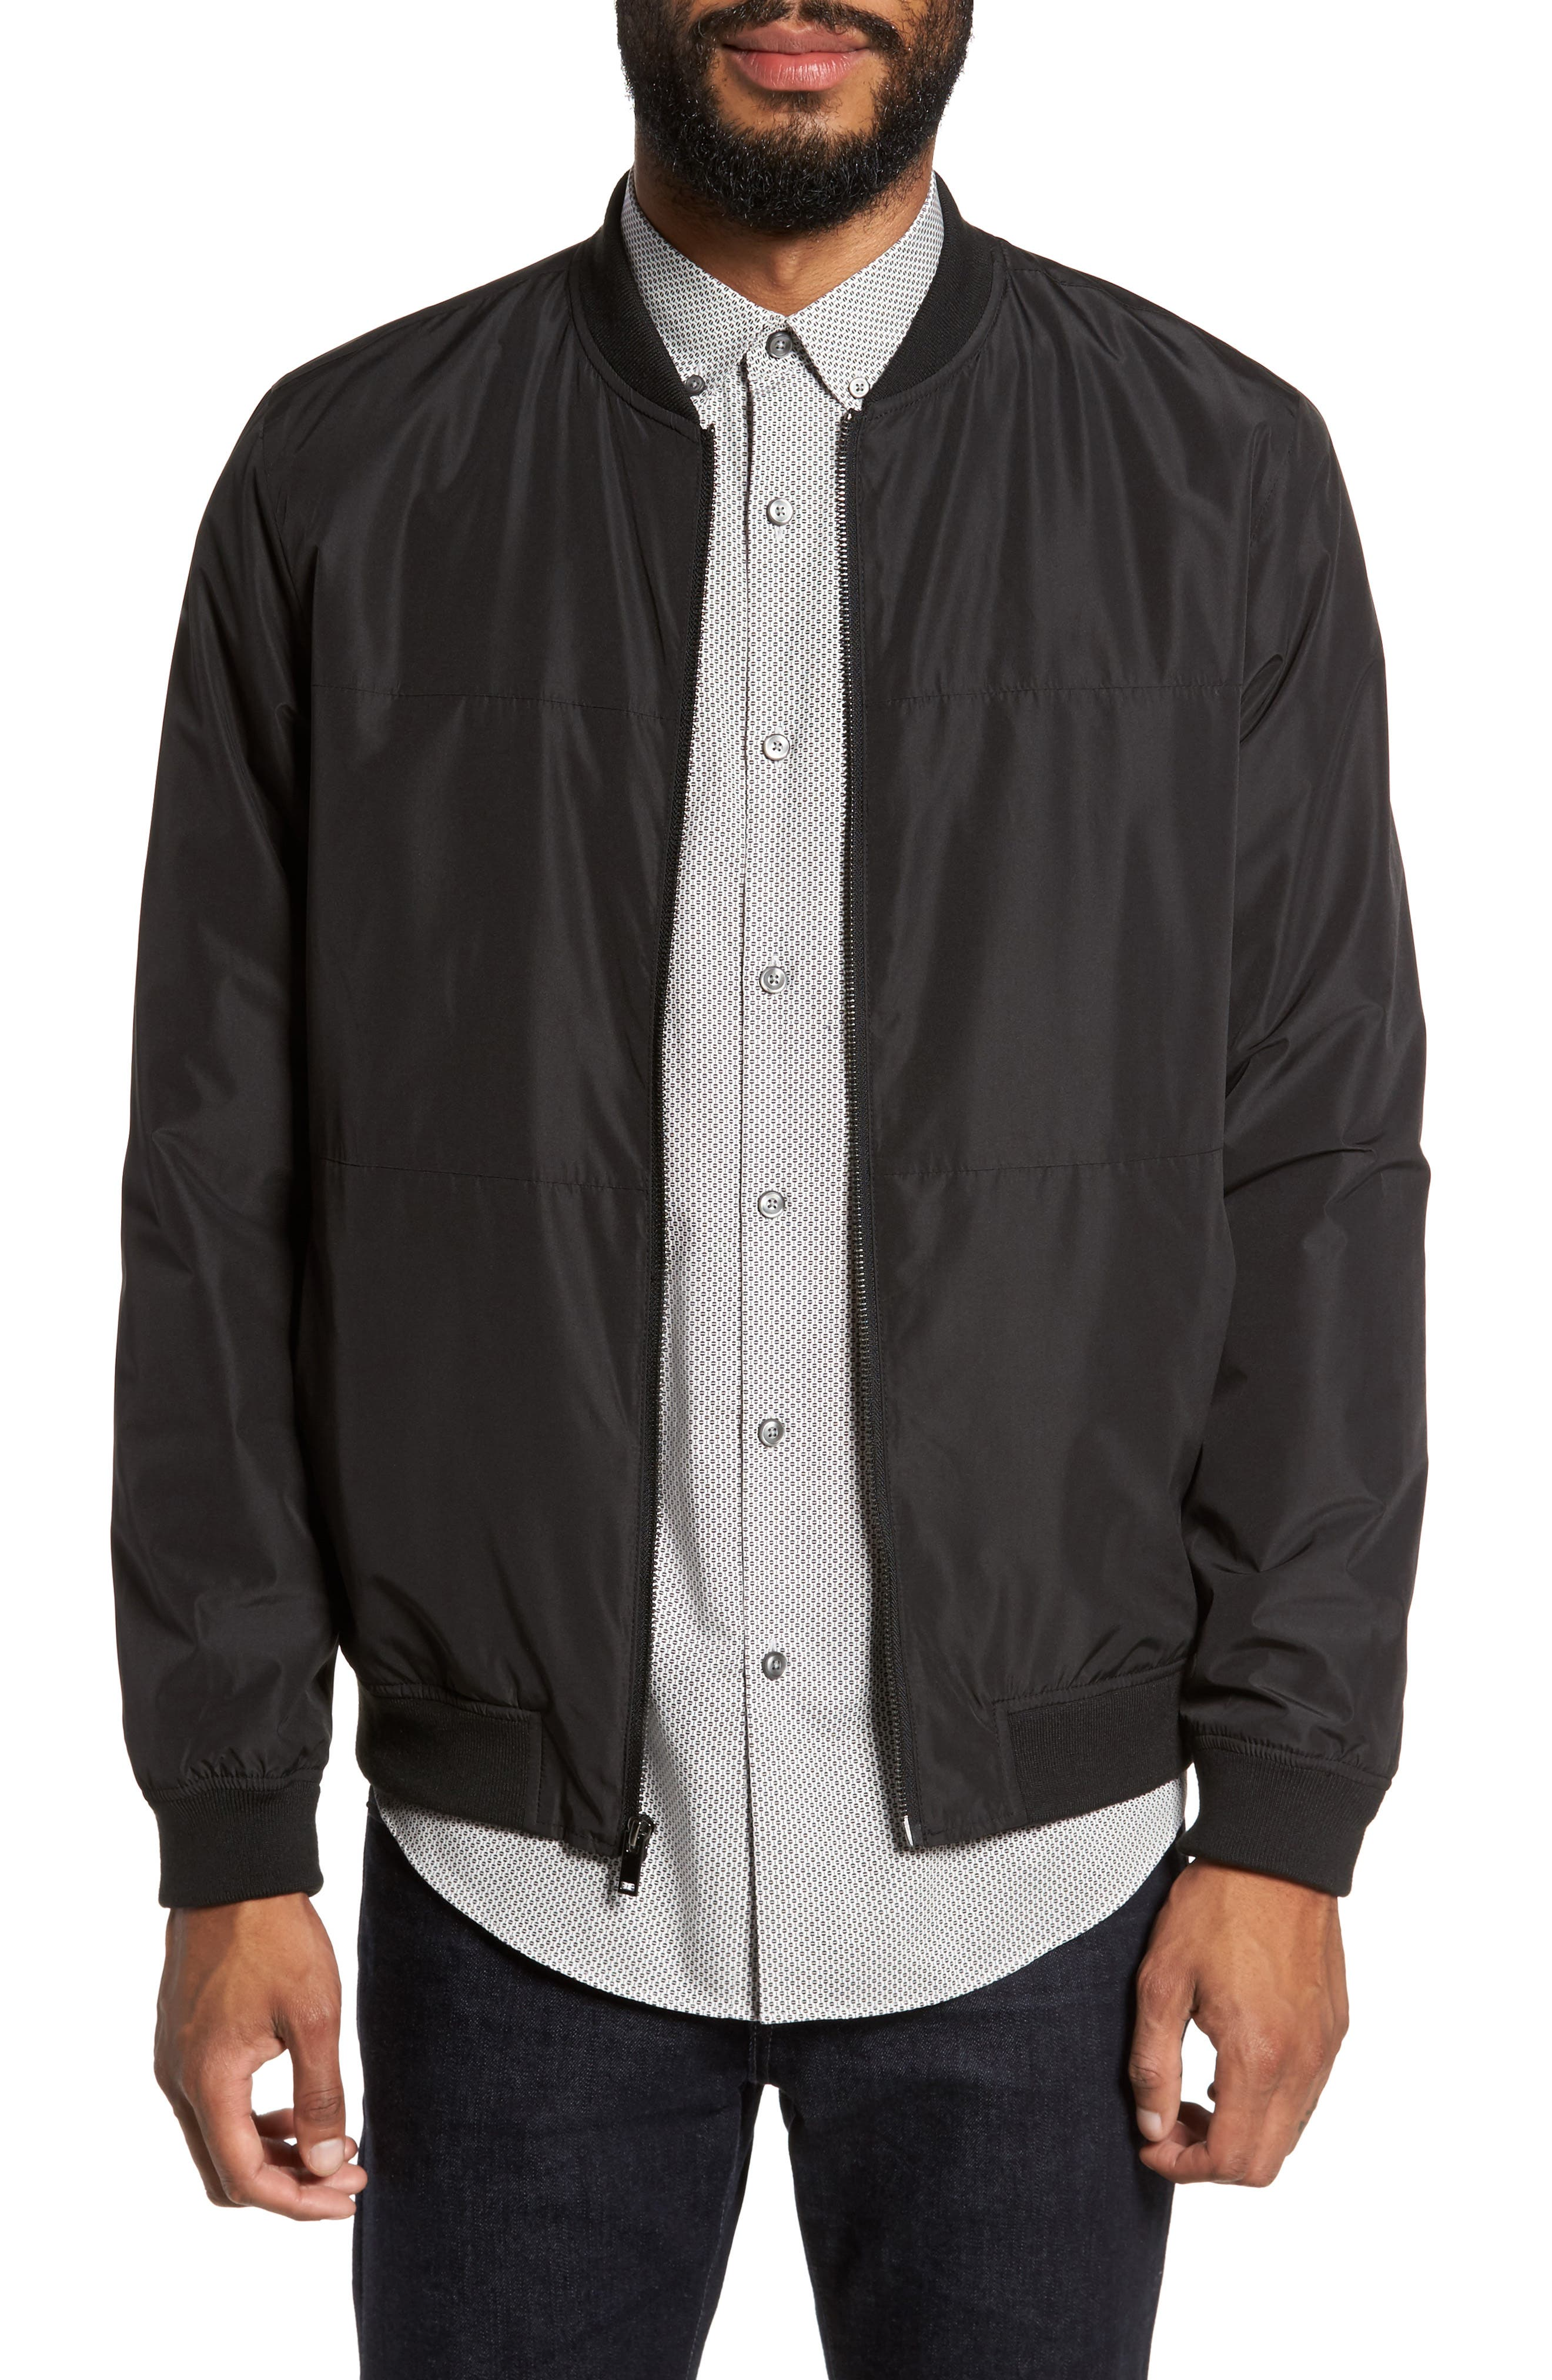 Lightweight Bomber Jacket,                             Main thumbnail 1, color,                             Black